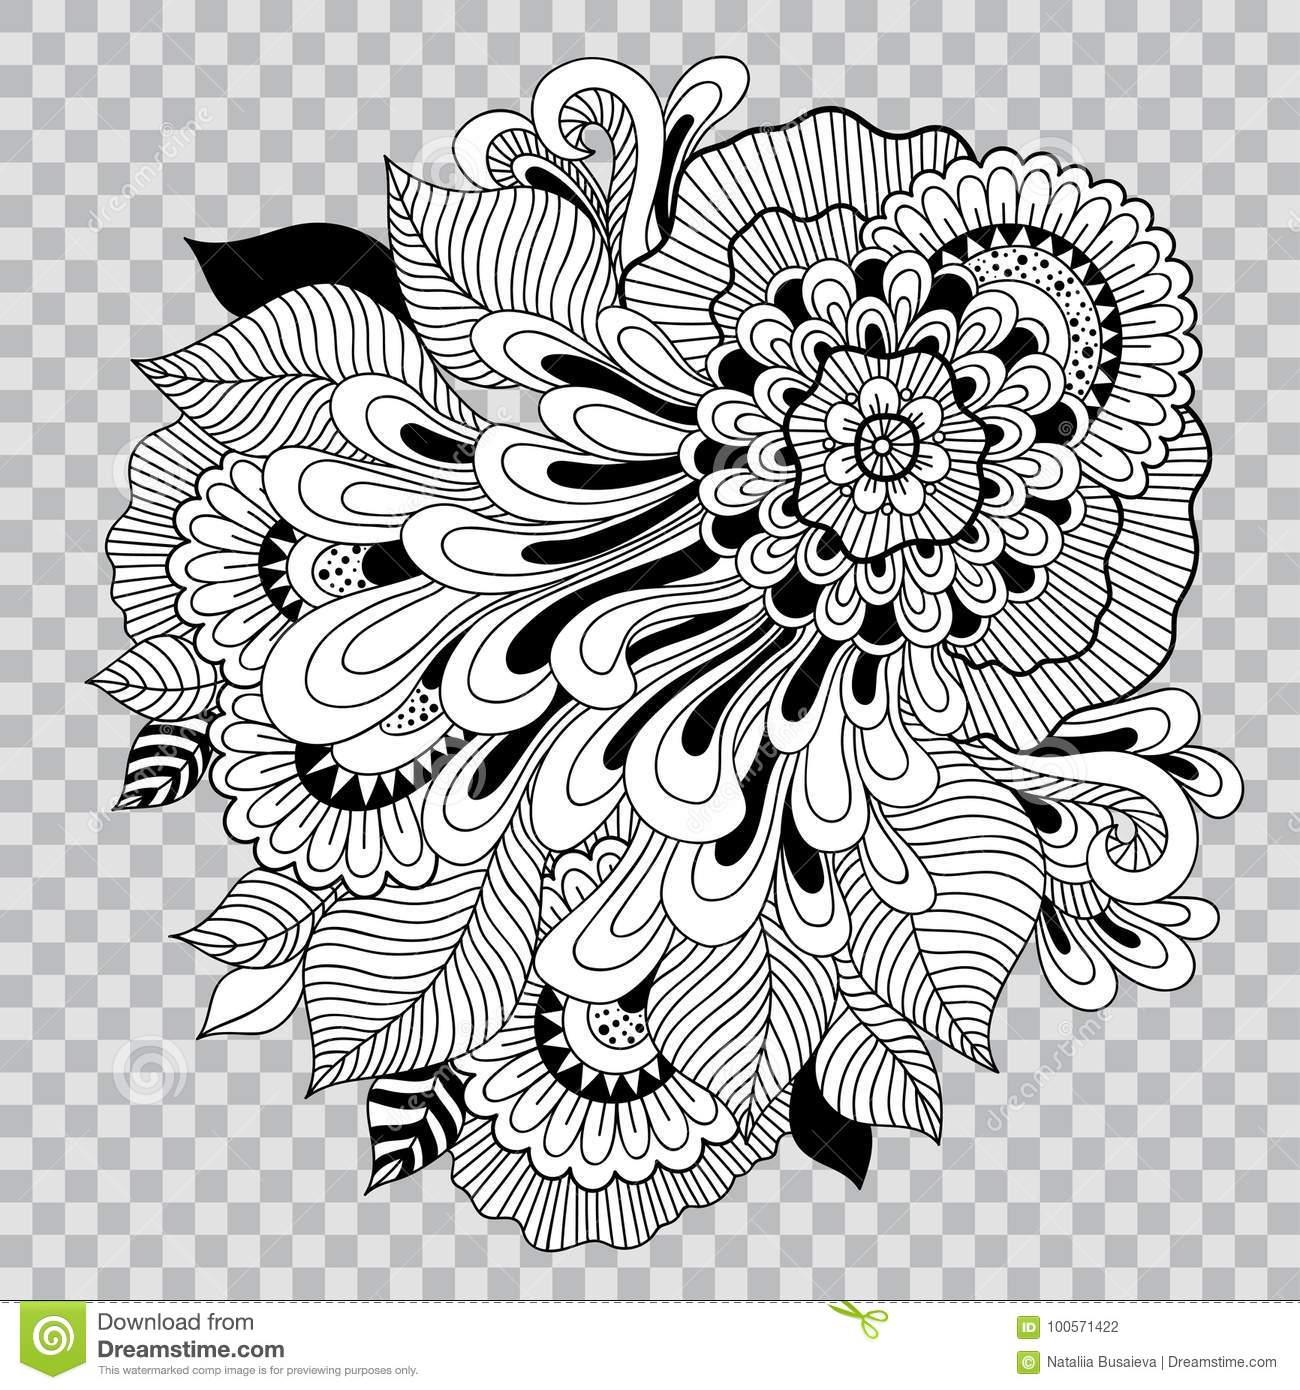 Black And White Floral Coloring On Transparent Background Flower